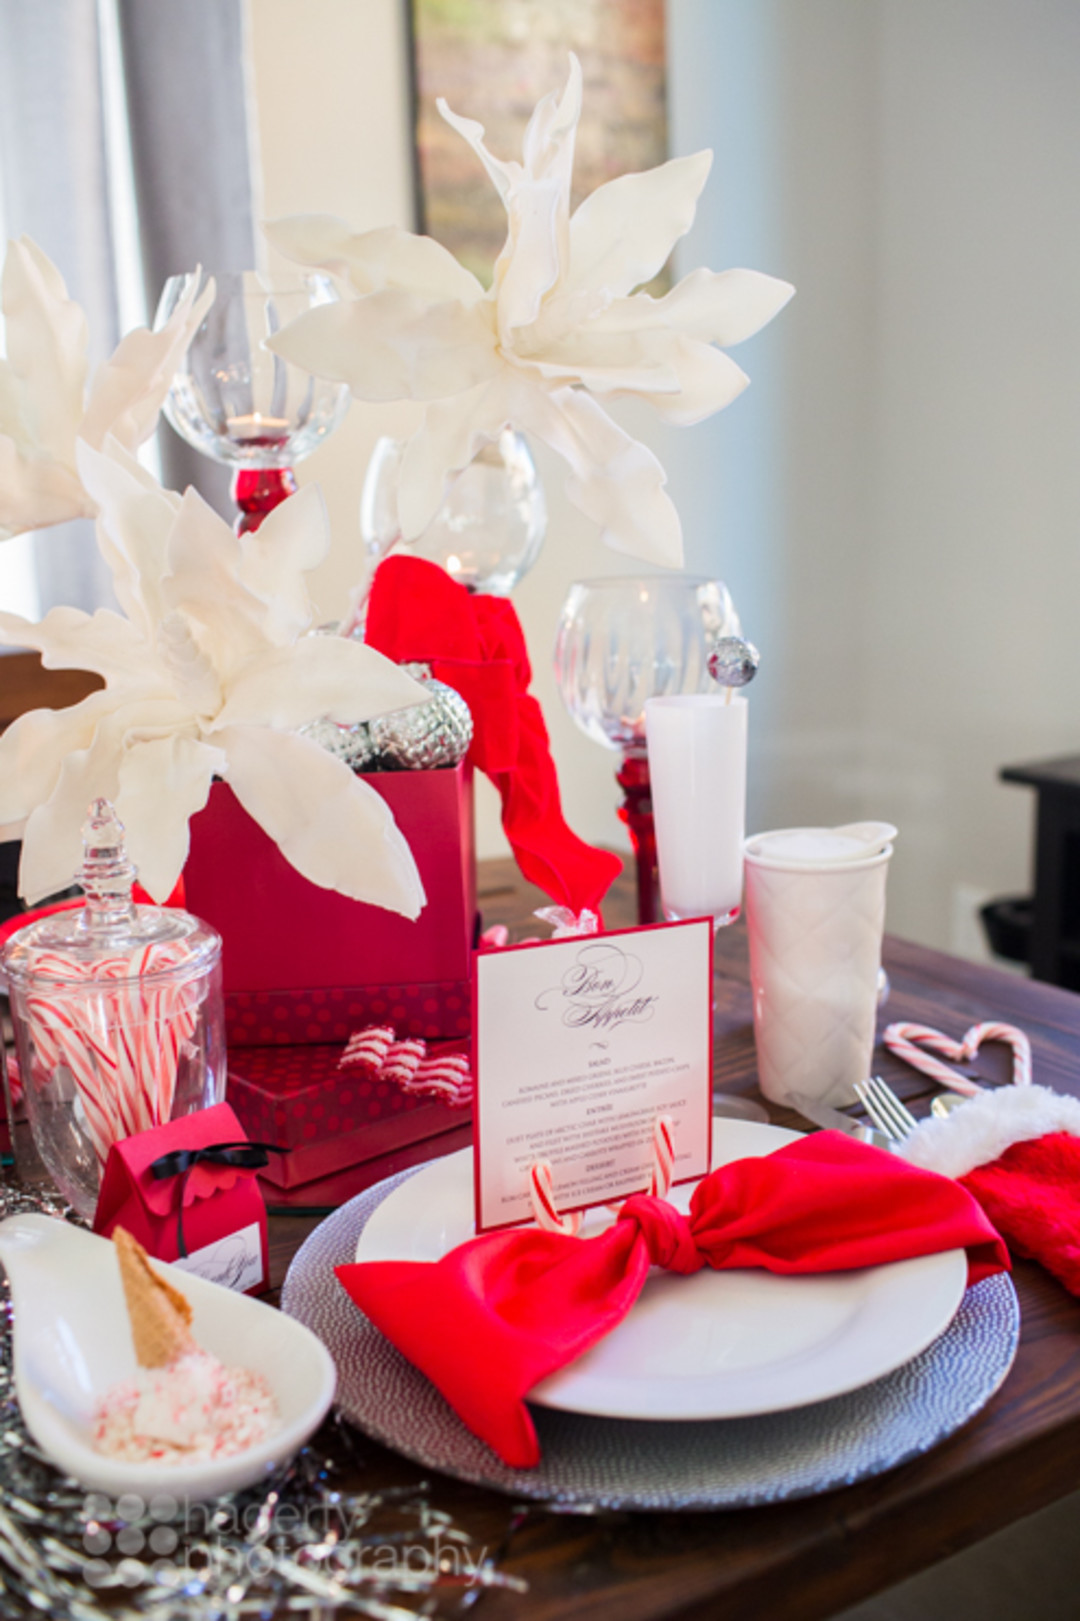 Looking for simple Christmas tablescape ideas for your holiday table? This elegant red, white and silver candy cane table setting has a lovely centerpiece and would be the perfect table decoration for your party or dinner! Click for all the details! #Christmasdecor #holidaydecor #tablescape